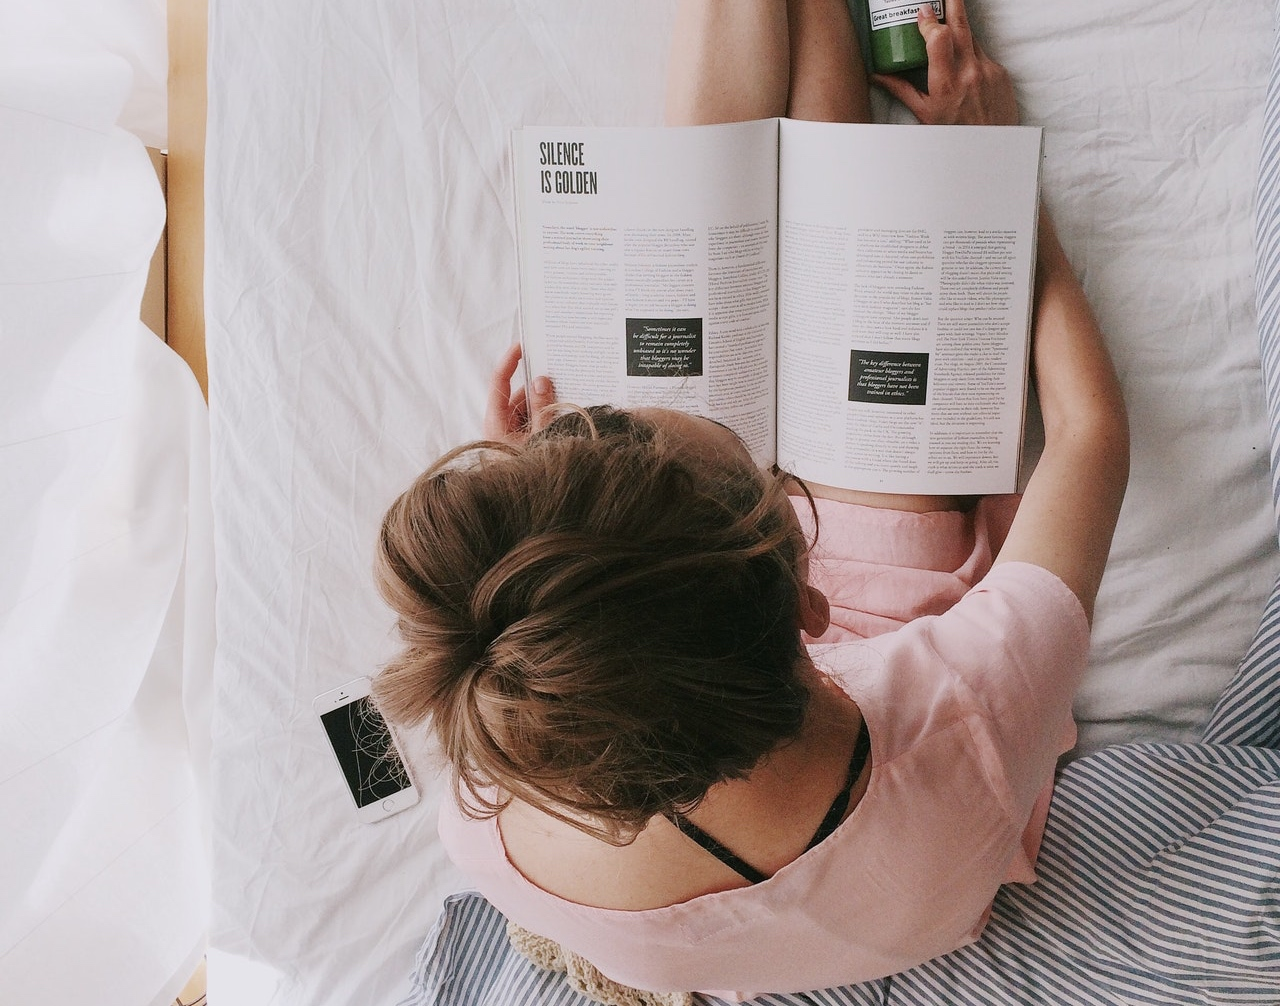 A White woman with a bun sitting on a white bed and reading a magazine that is sitting in her lap.